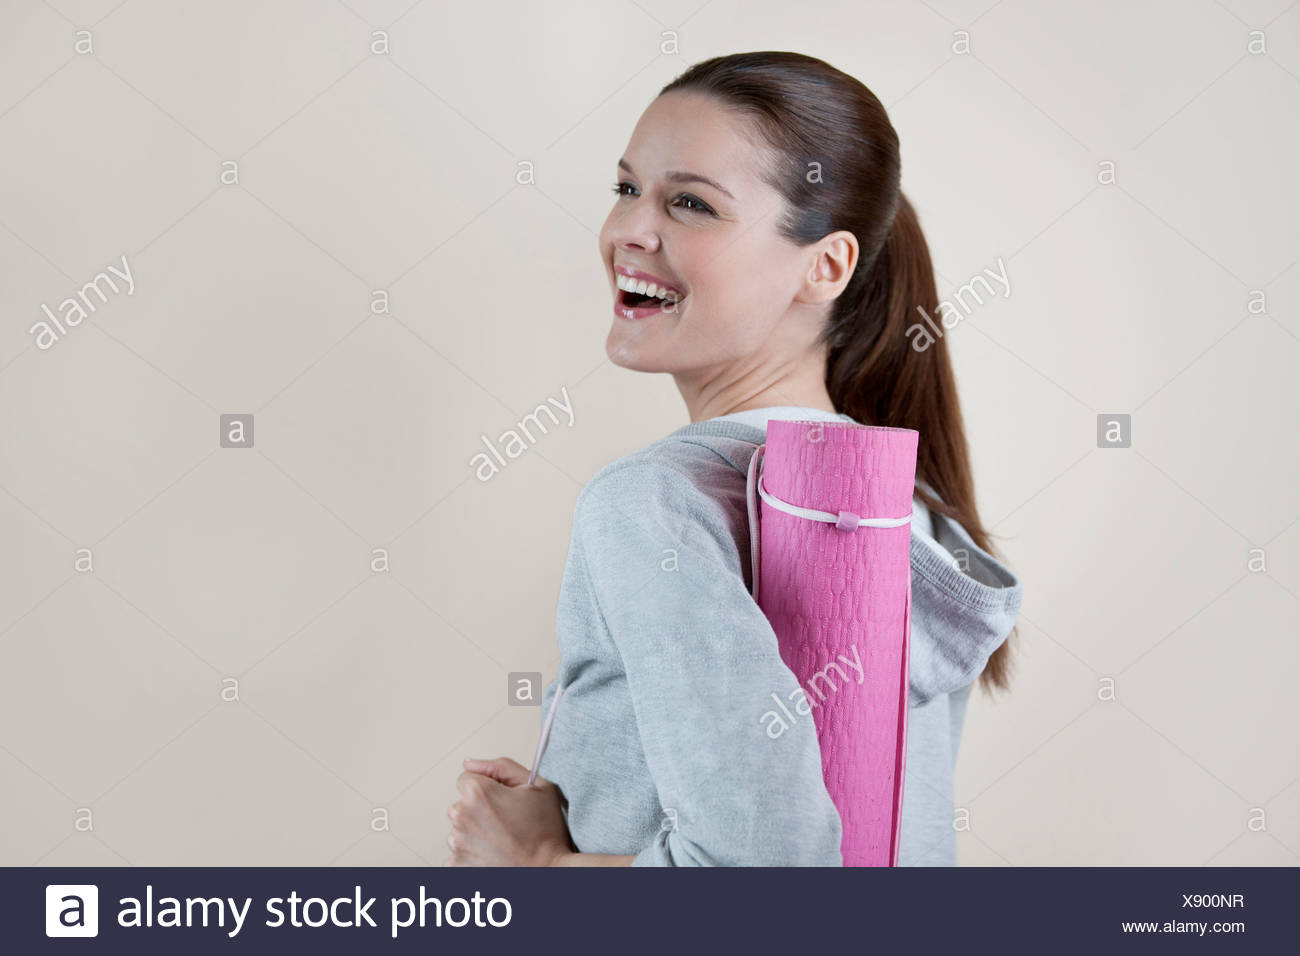 A young woman carrying a yoga mat, laughing Stock Photo